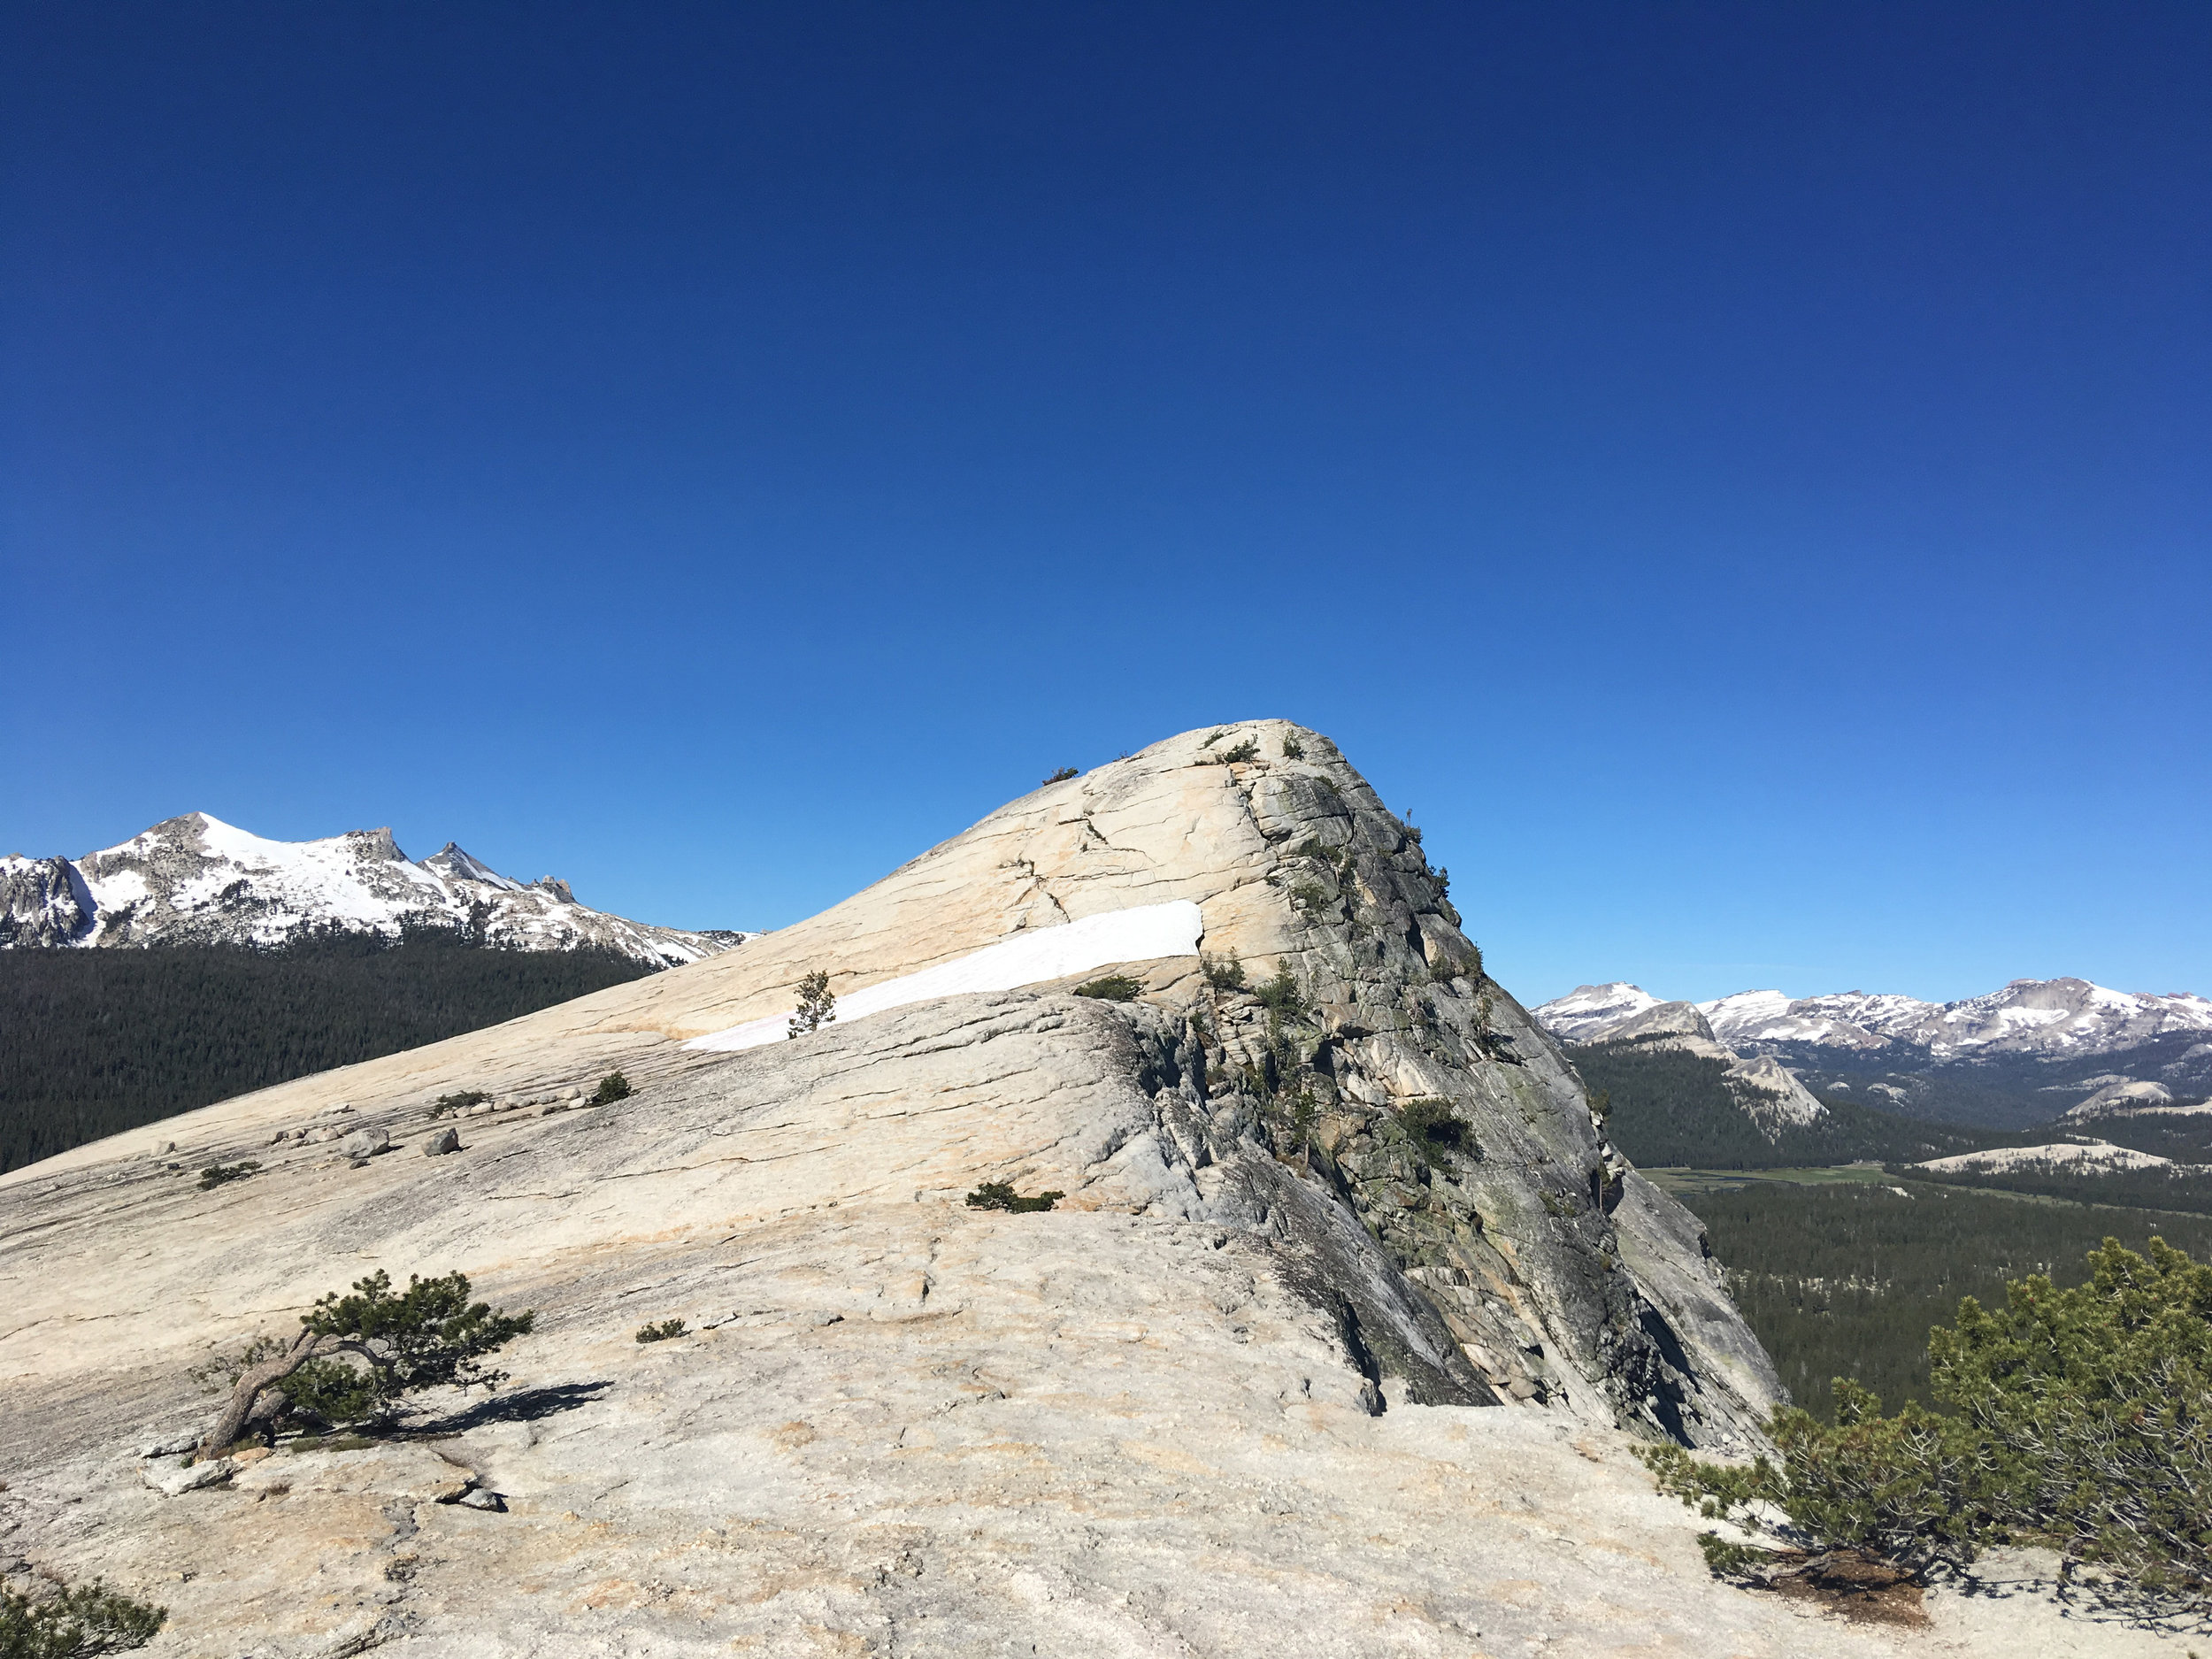 Lembert Dome - July 2019 - The approach to the top of Lembert Dome. Tuolumne Meadows can be seen in the background